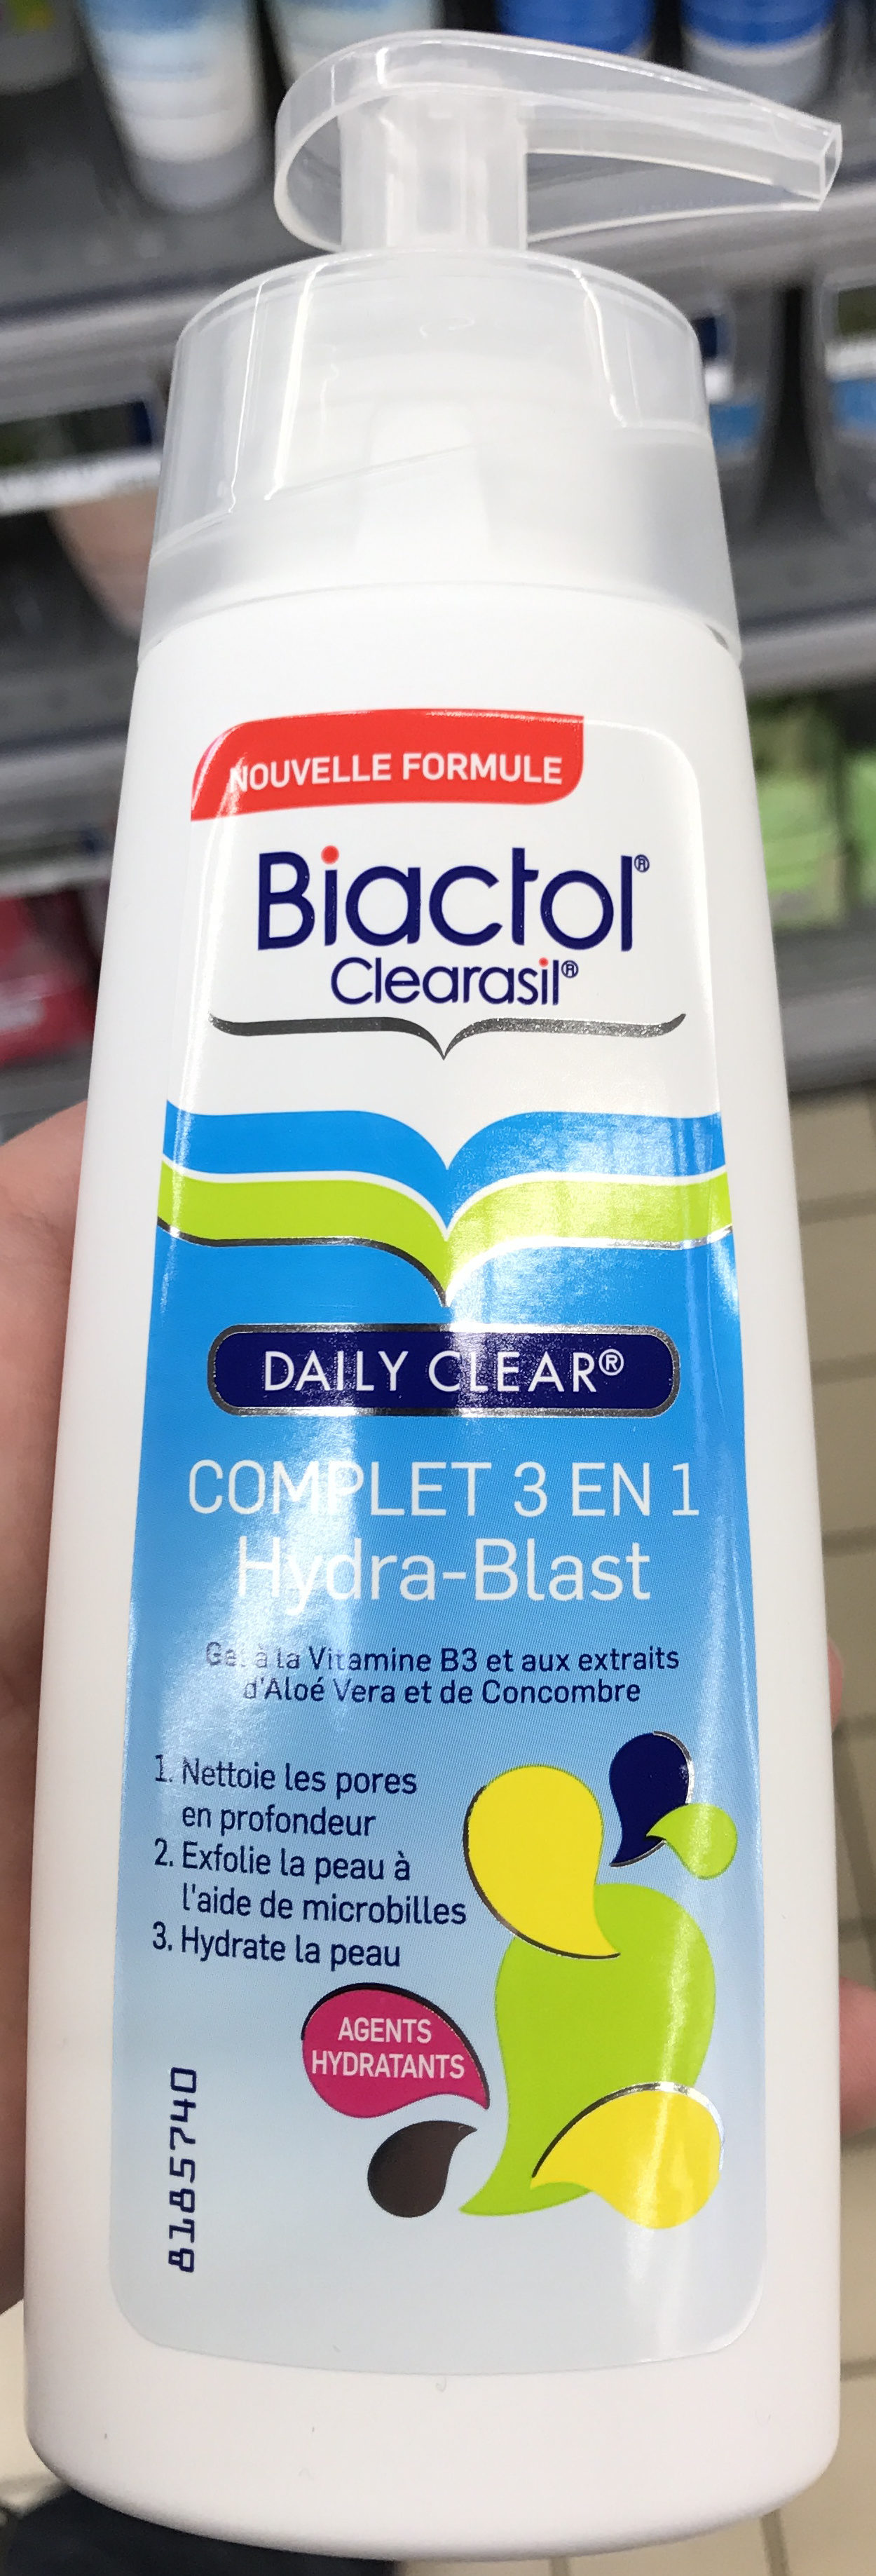 Clearasil Daily Clear Complet 3 en 1 Hydra-Blast - Product